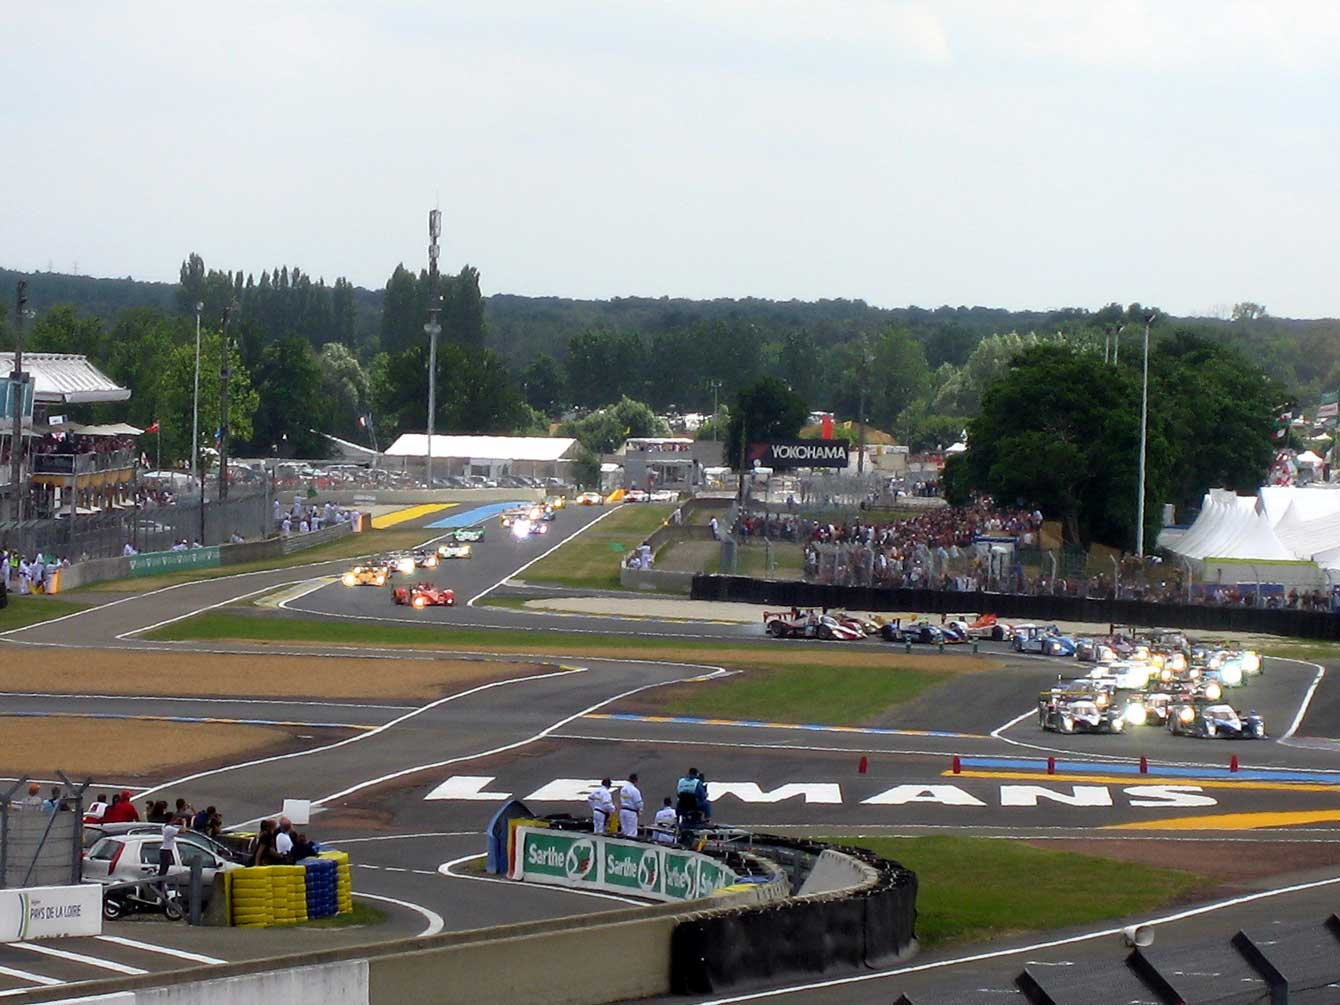 Le Mans 24 Hour Race